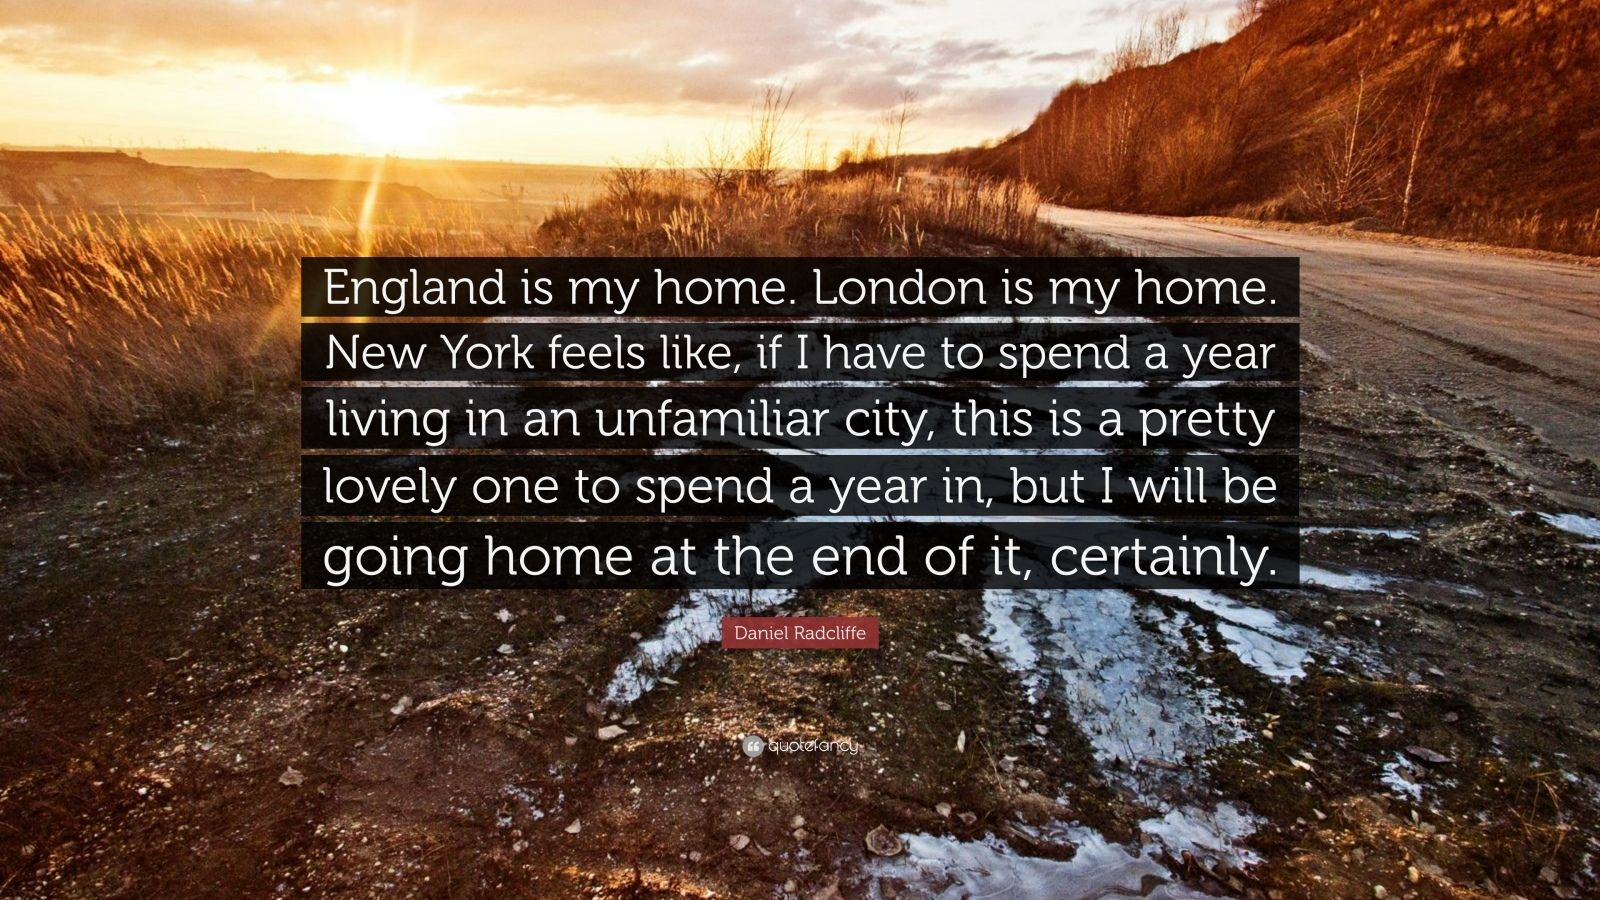 """Daniel Radcliffe Quote: """"England is my home. London is my home. New York feels like, if I have to spend a year living in an unfamiliar city, this is a pretty lovely one to spend a year in, but I will be going home at the end of it, certainly."""""""